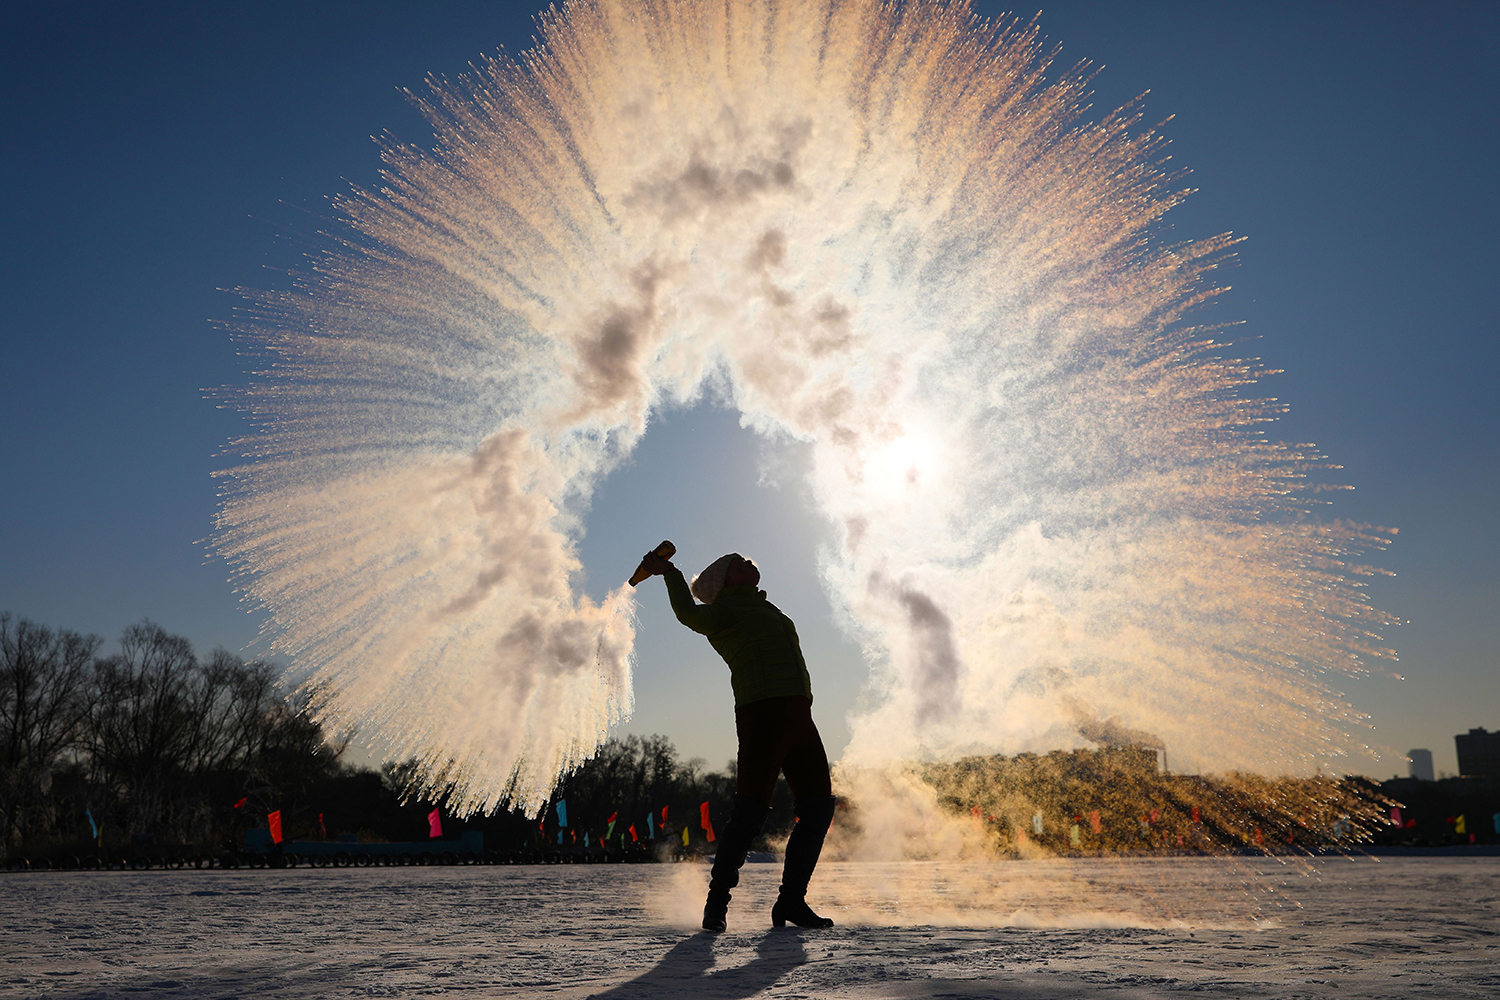 A woman throws hot water into the air and watches as it instantly condenses into ice crystals amid temperatures of minus 17 degrees Fahrenheit in Shenyang, China, on Jan. 8. STR/AFP via Getty Images